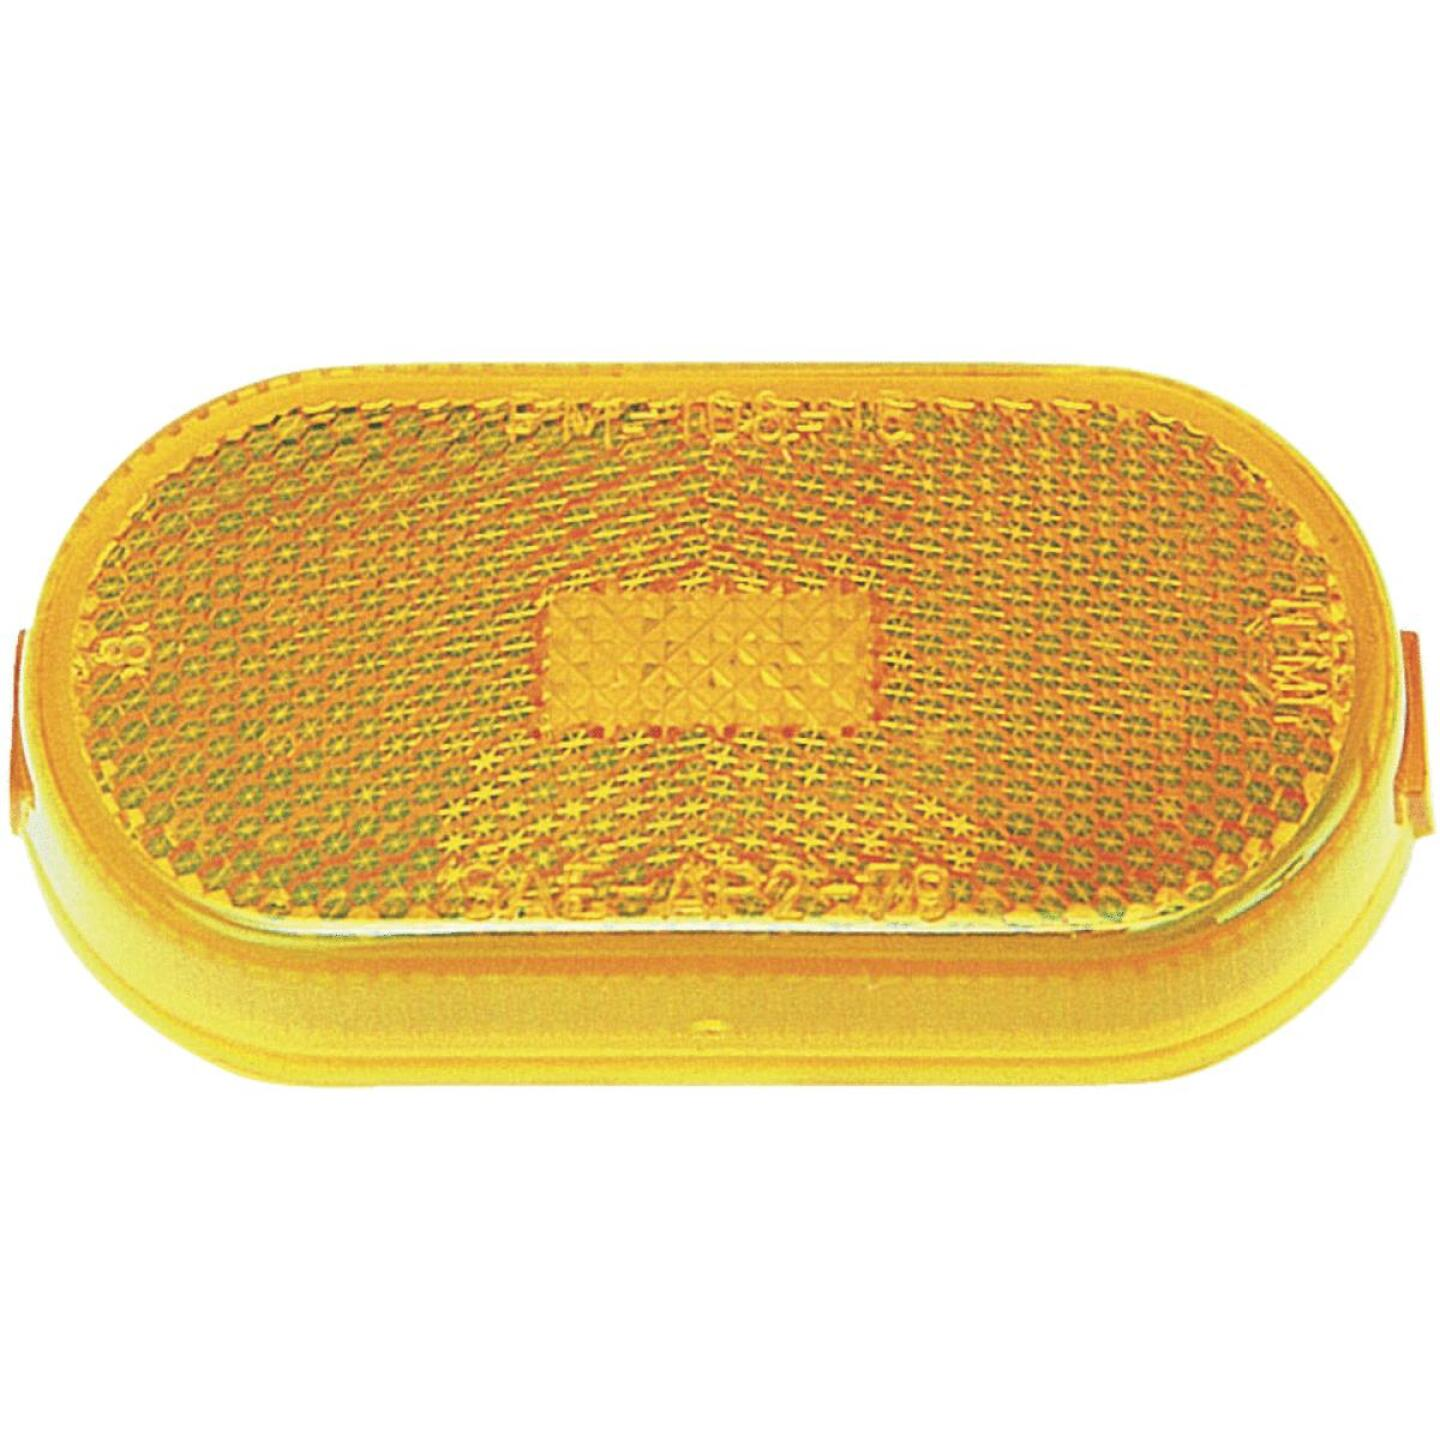 Peterson Oblong 12 V. Amber Clearance Light Image 1